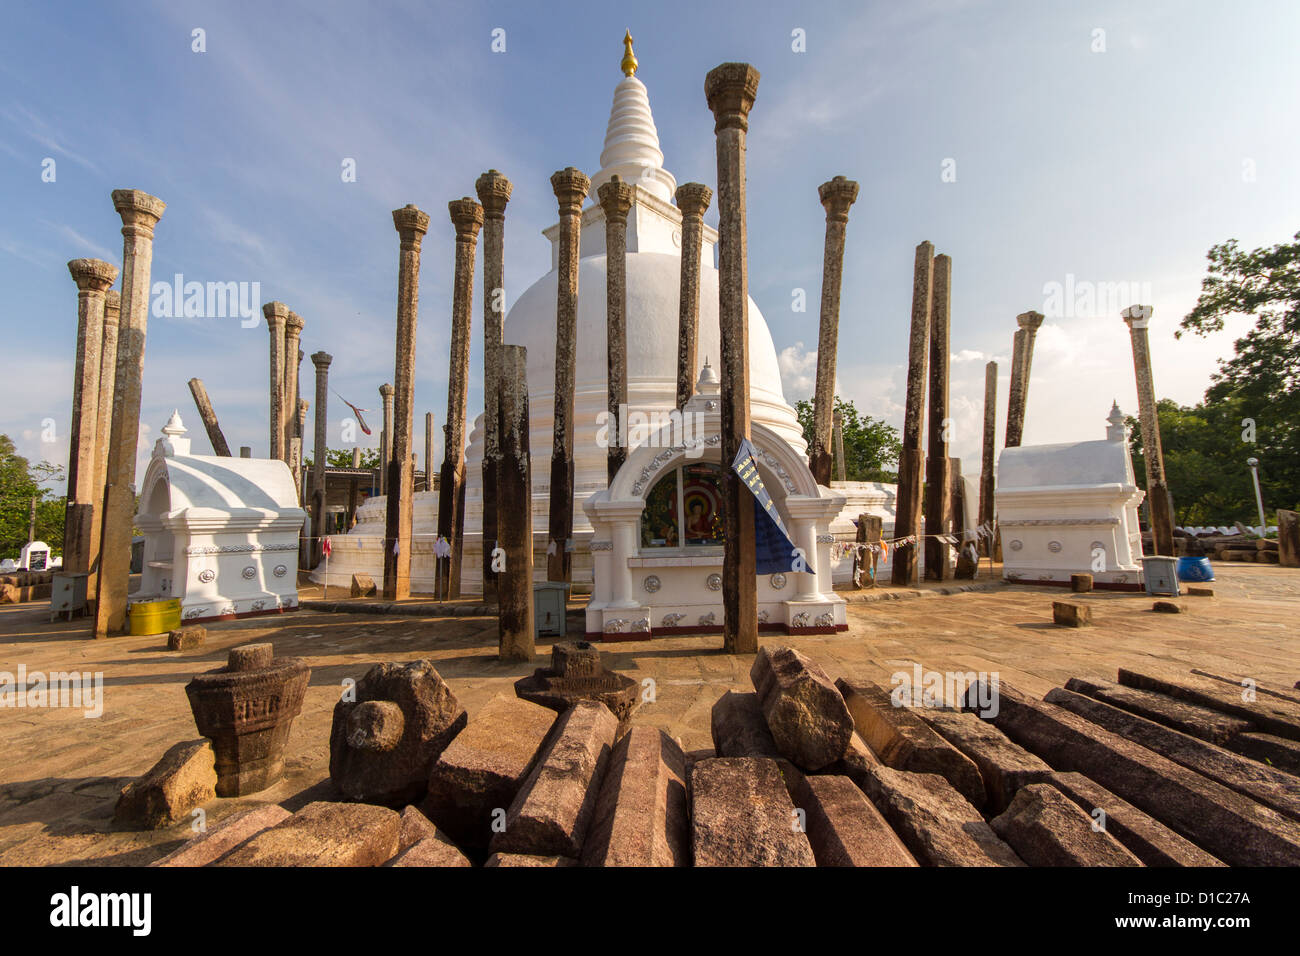 Pillars laying at Thuparamaya - Stock Image